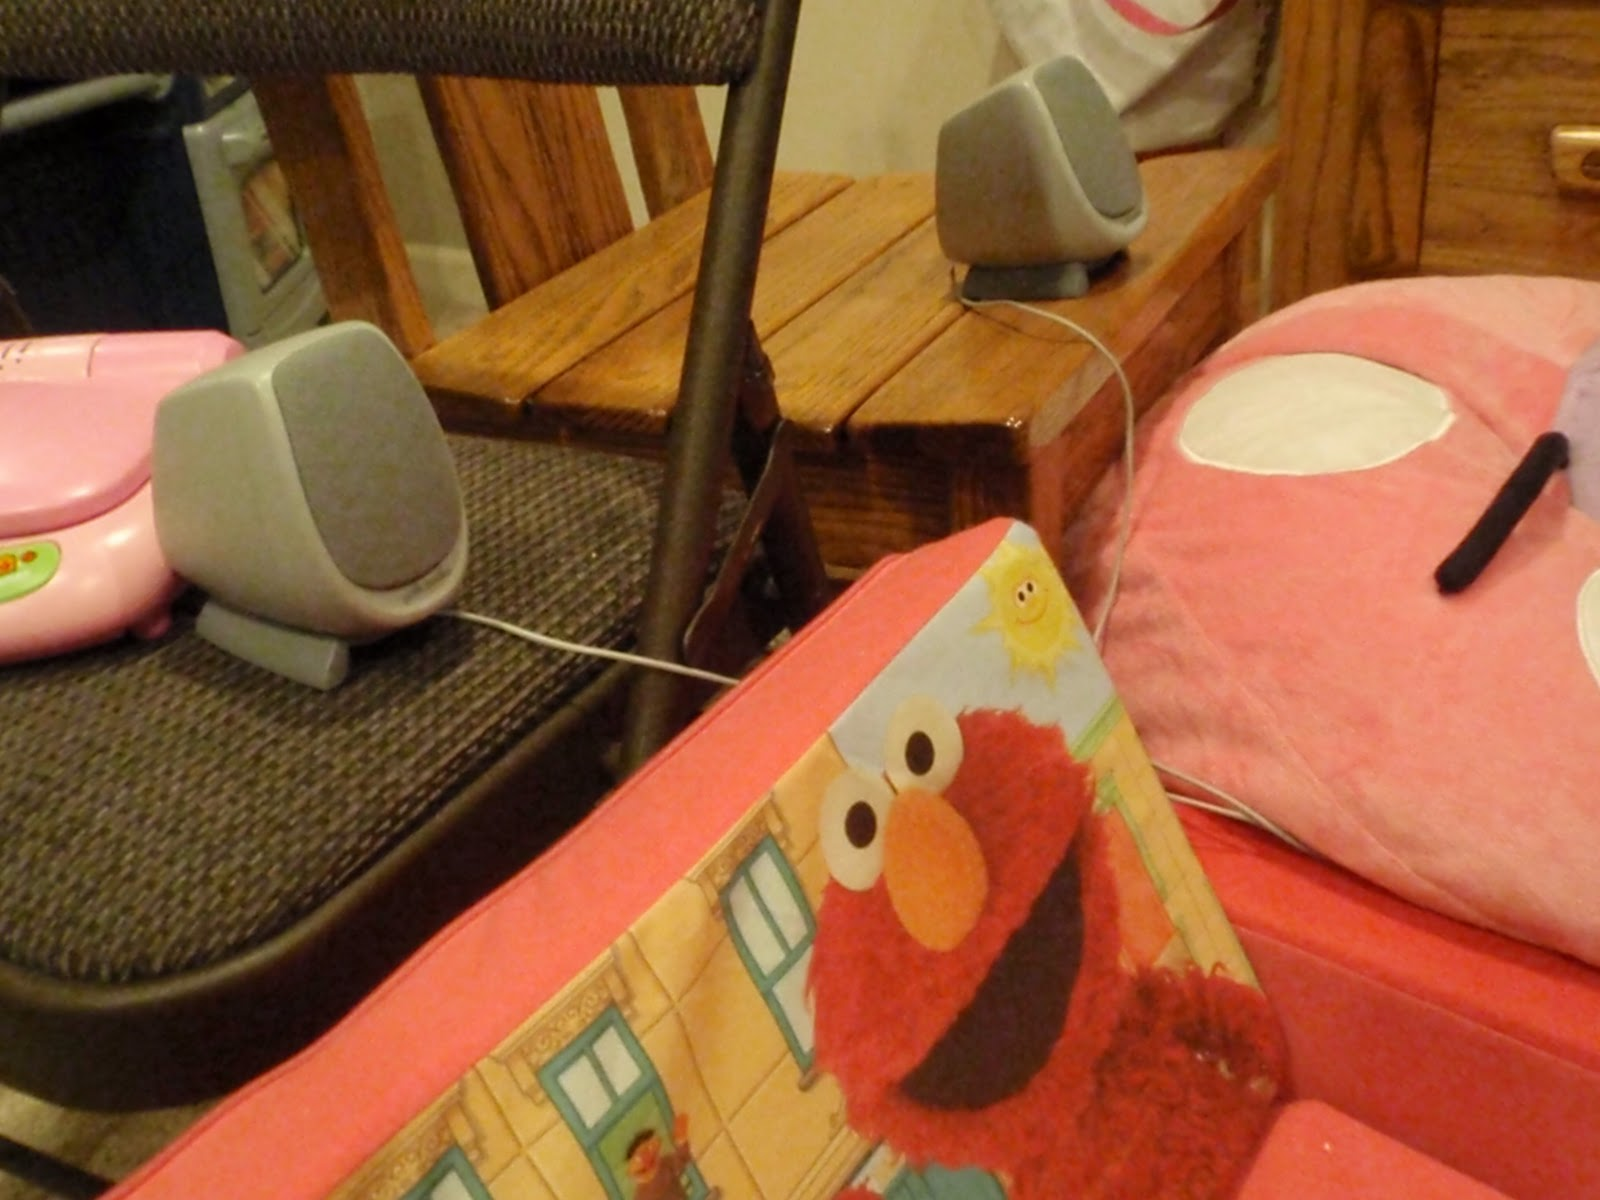 elmo bean bag chair conference table and chairs attempting mary poppins a night at the movies